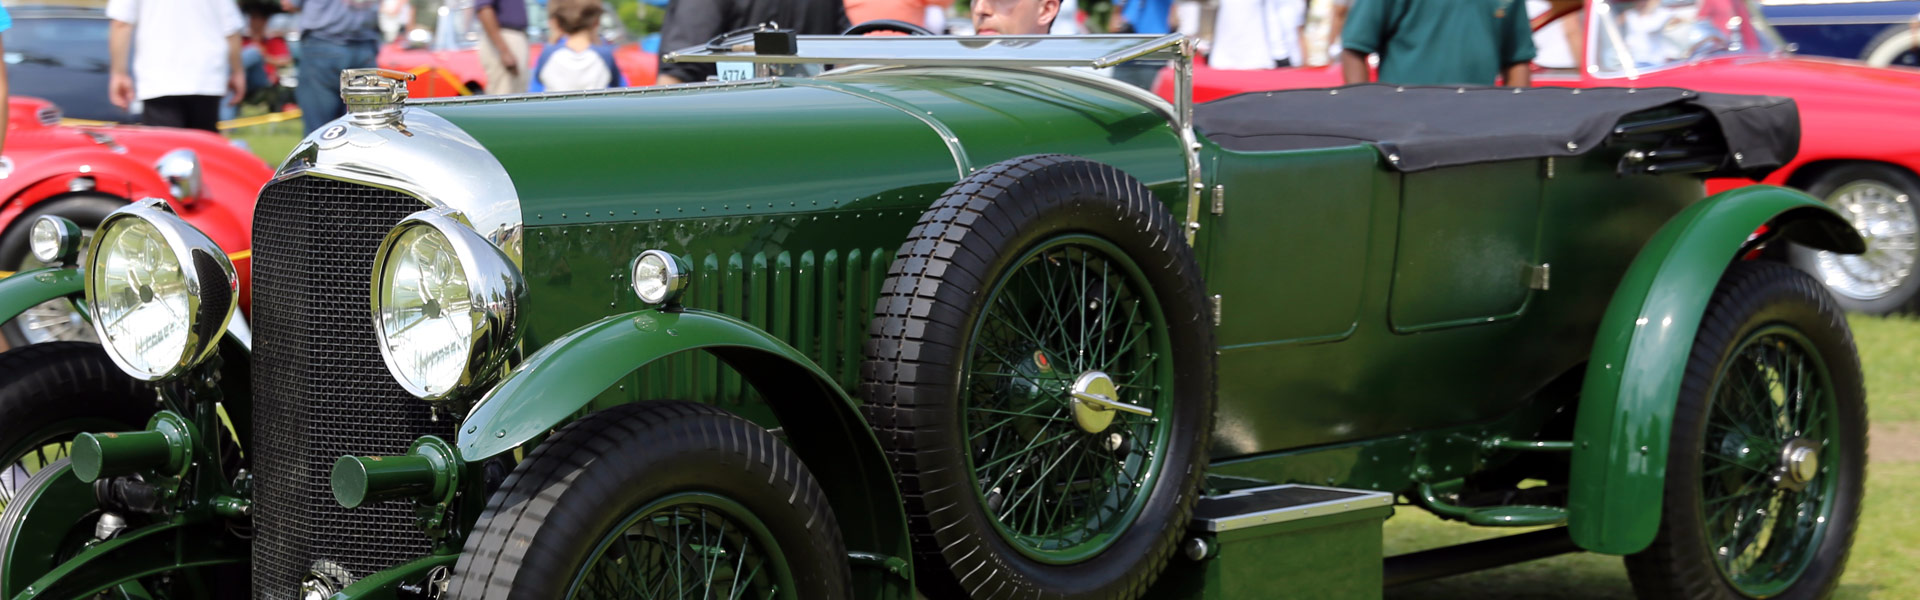 Bentley Le Mans finance